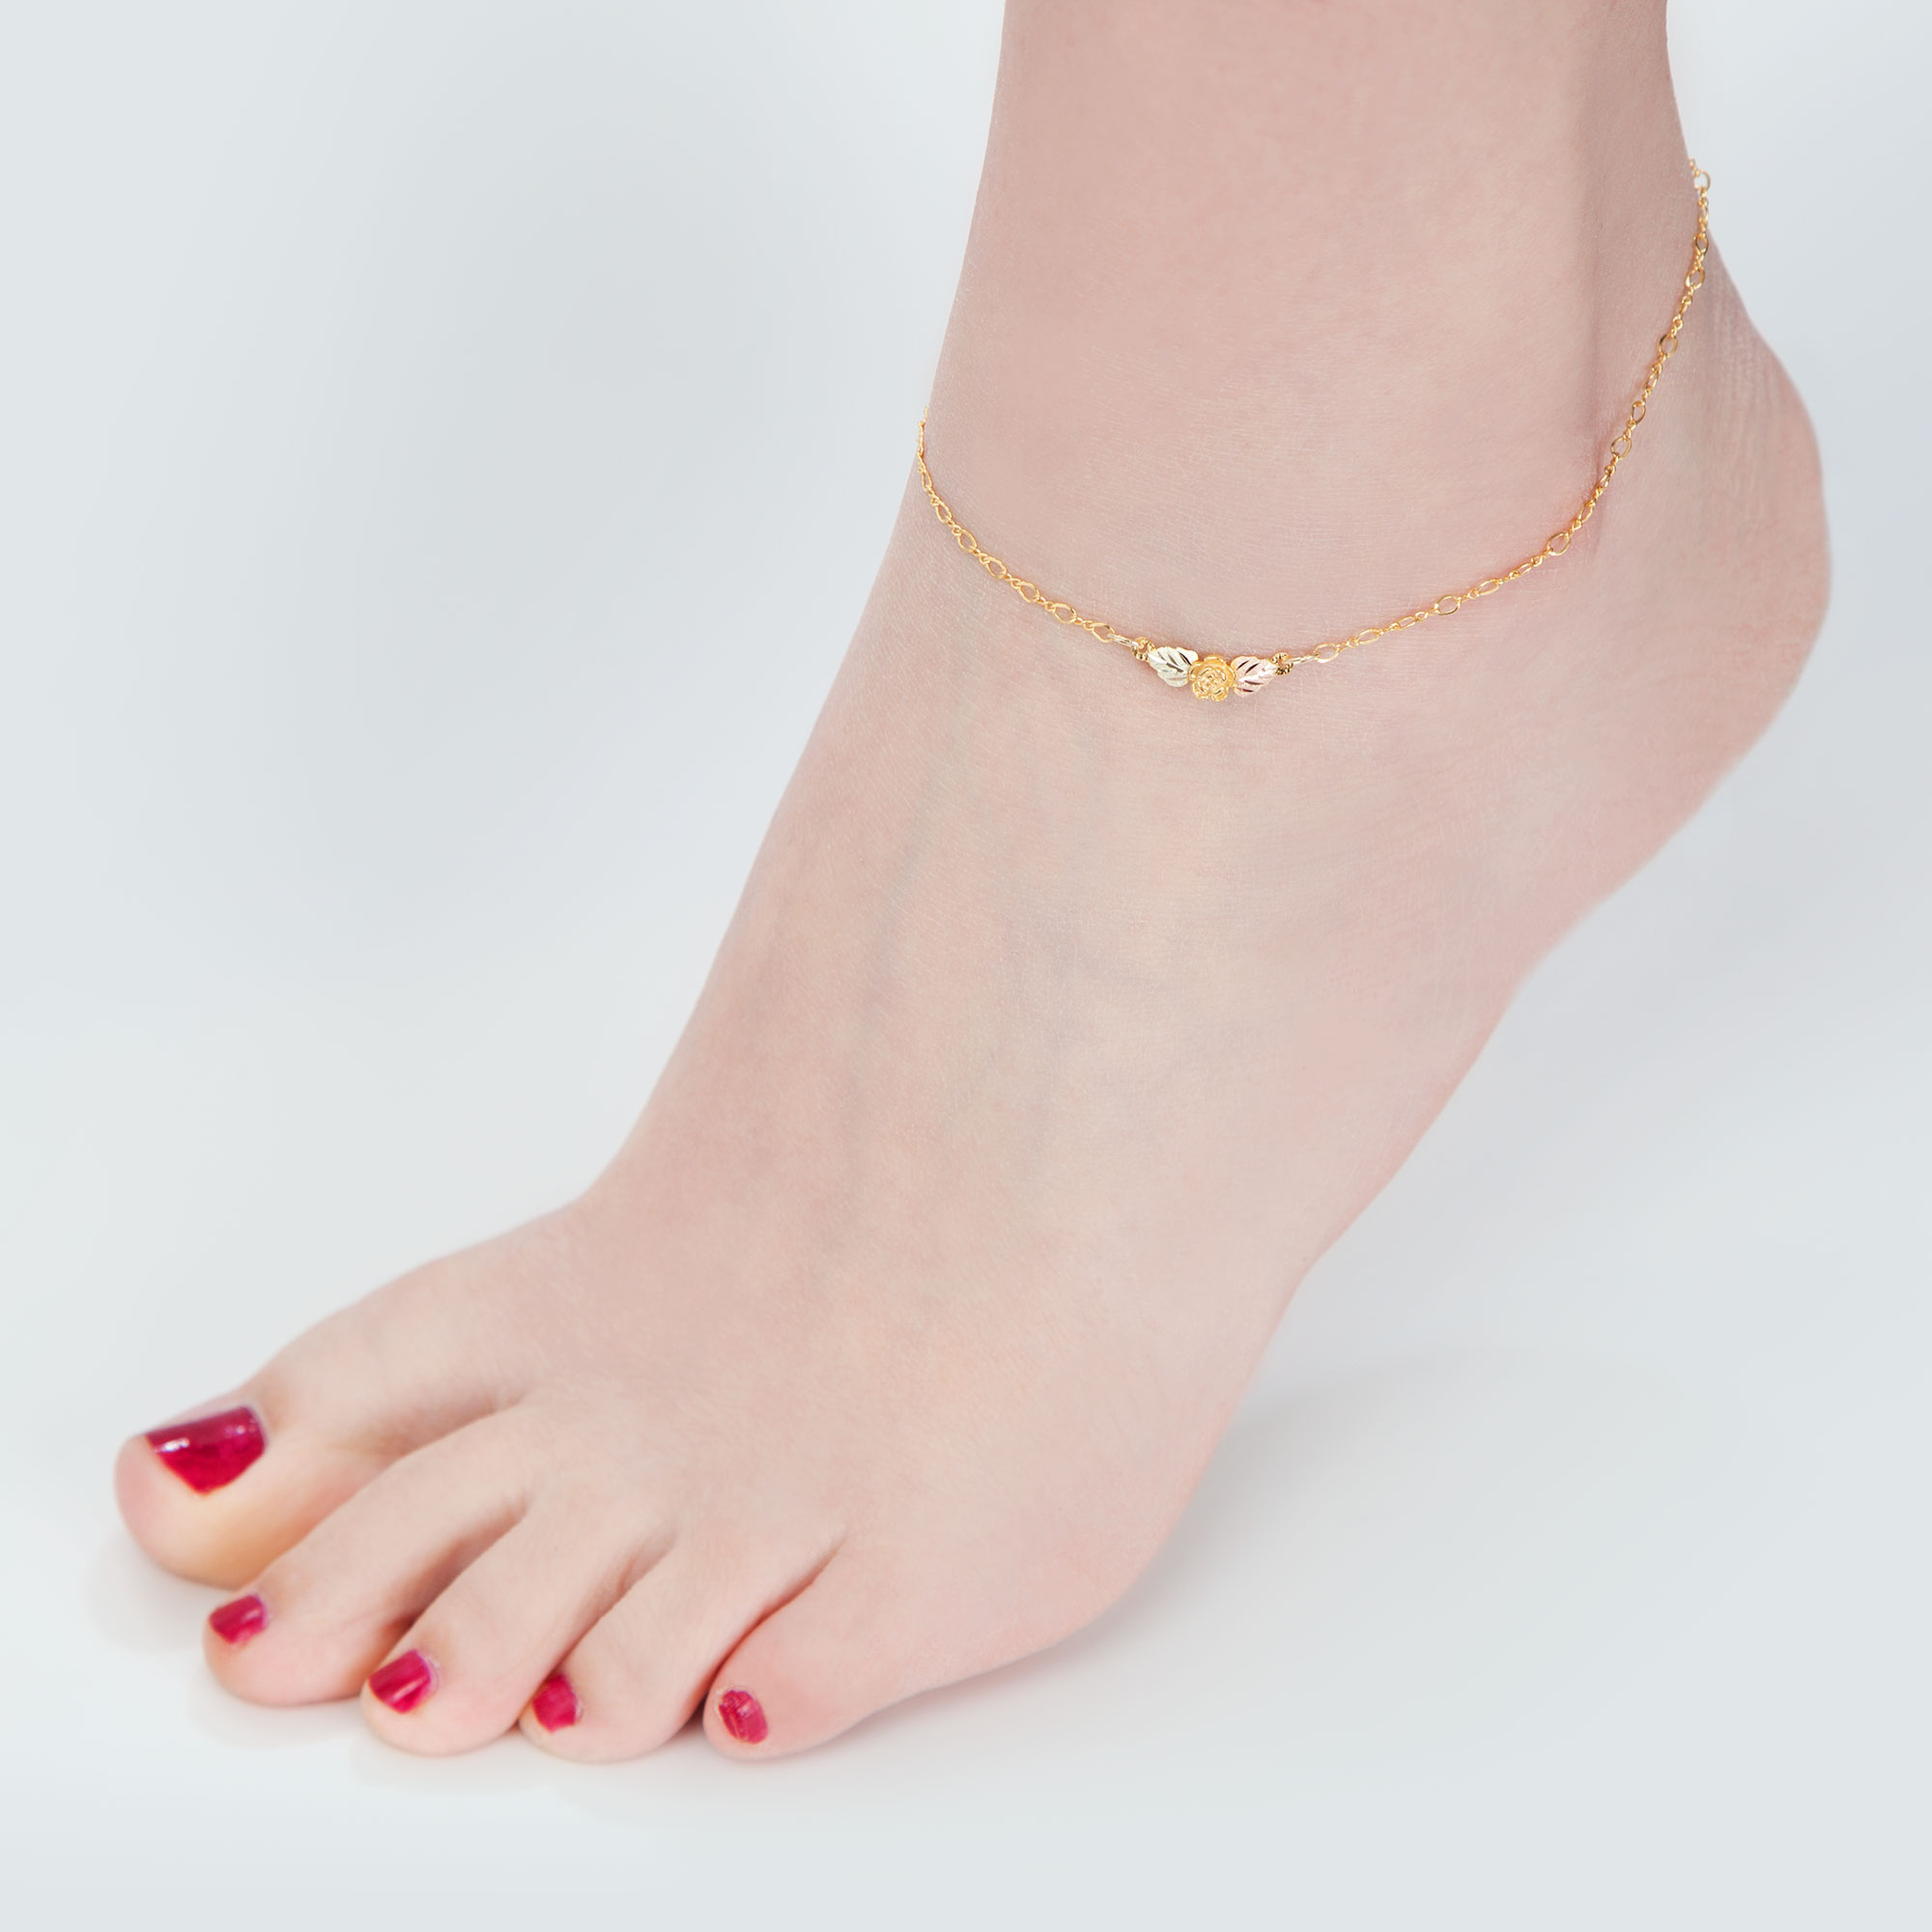 wearing anklets new anklet gold designs for jewelry nationtrendz ladies ideas girls women com